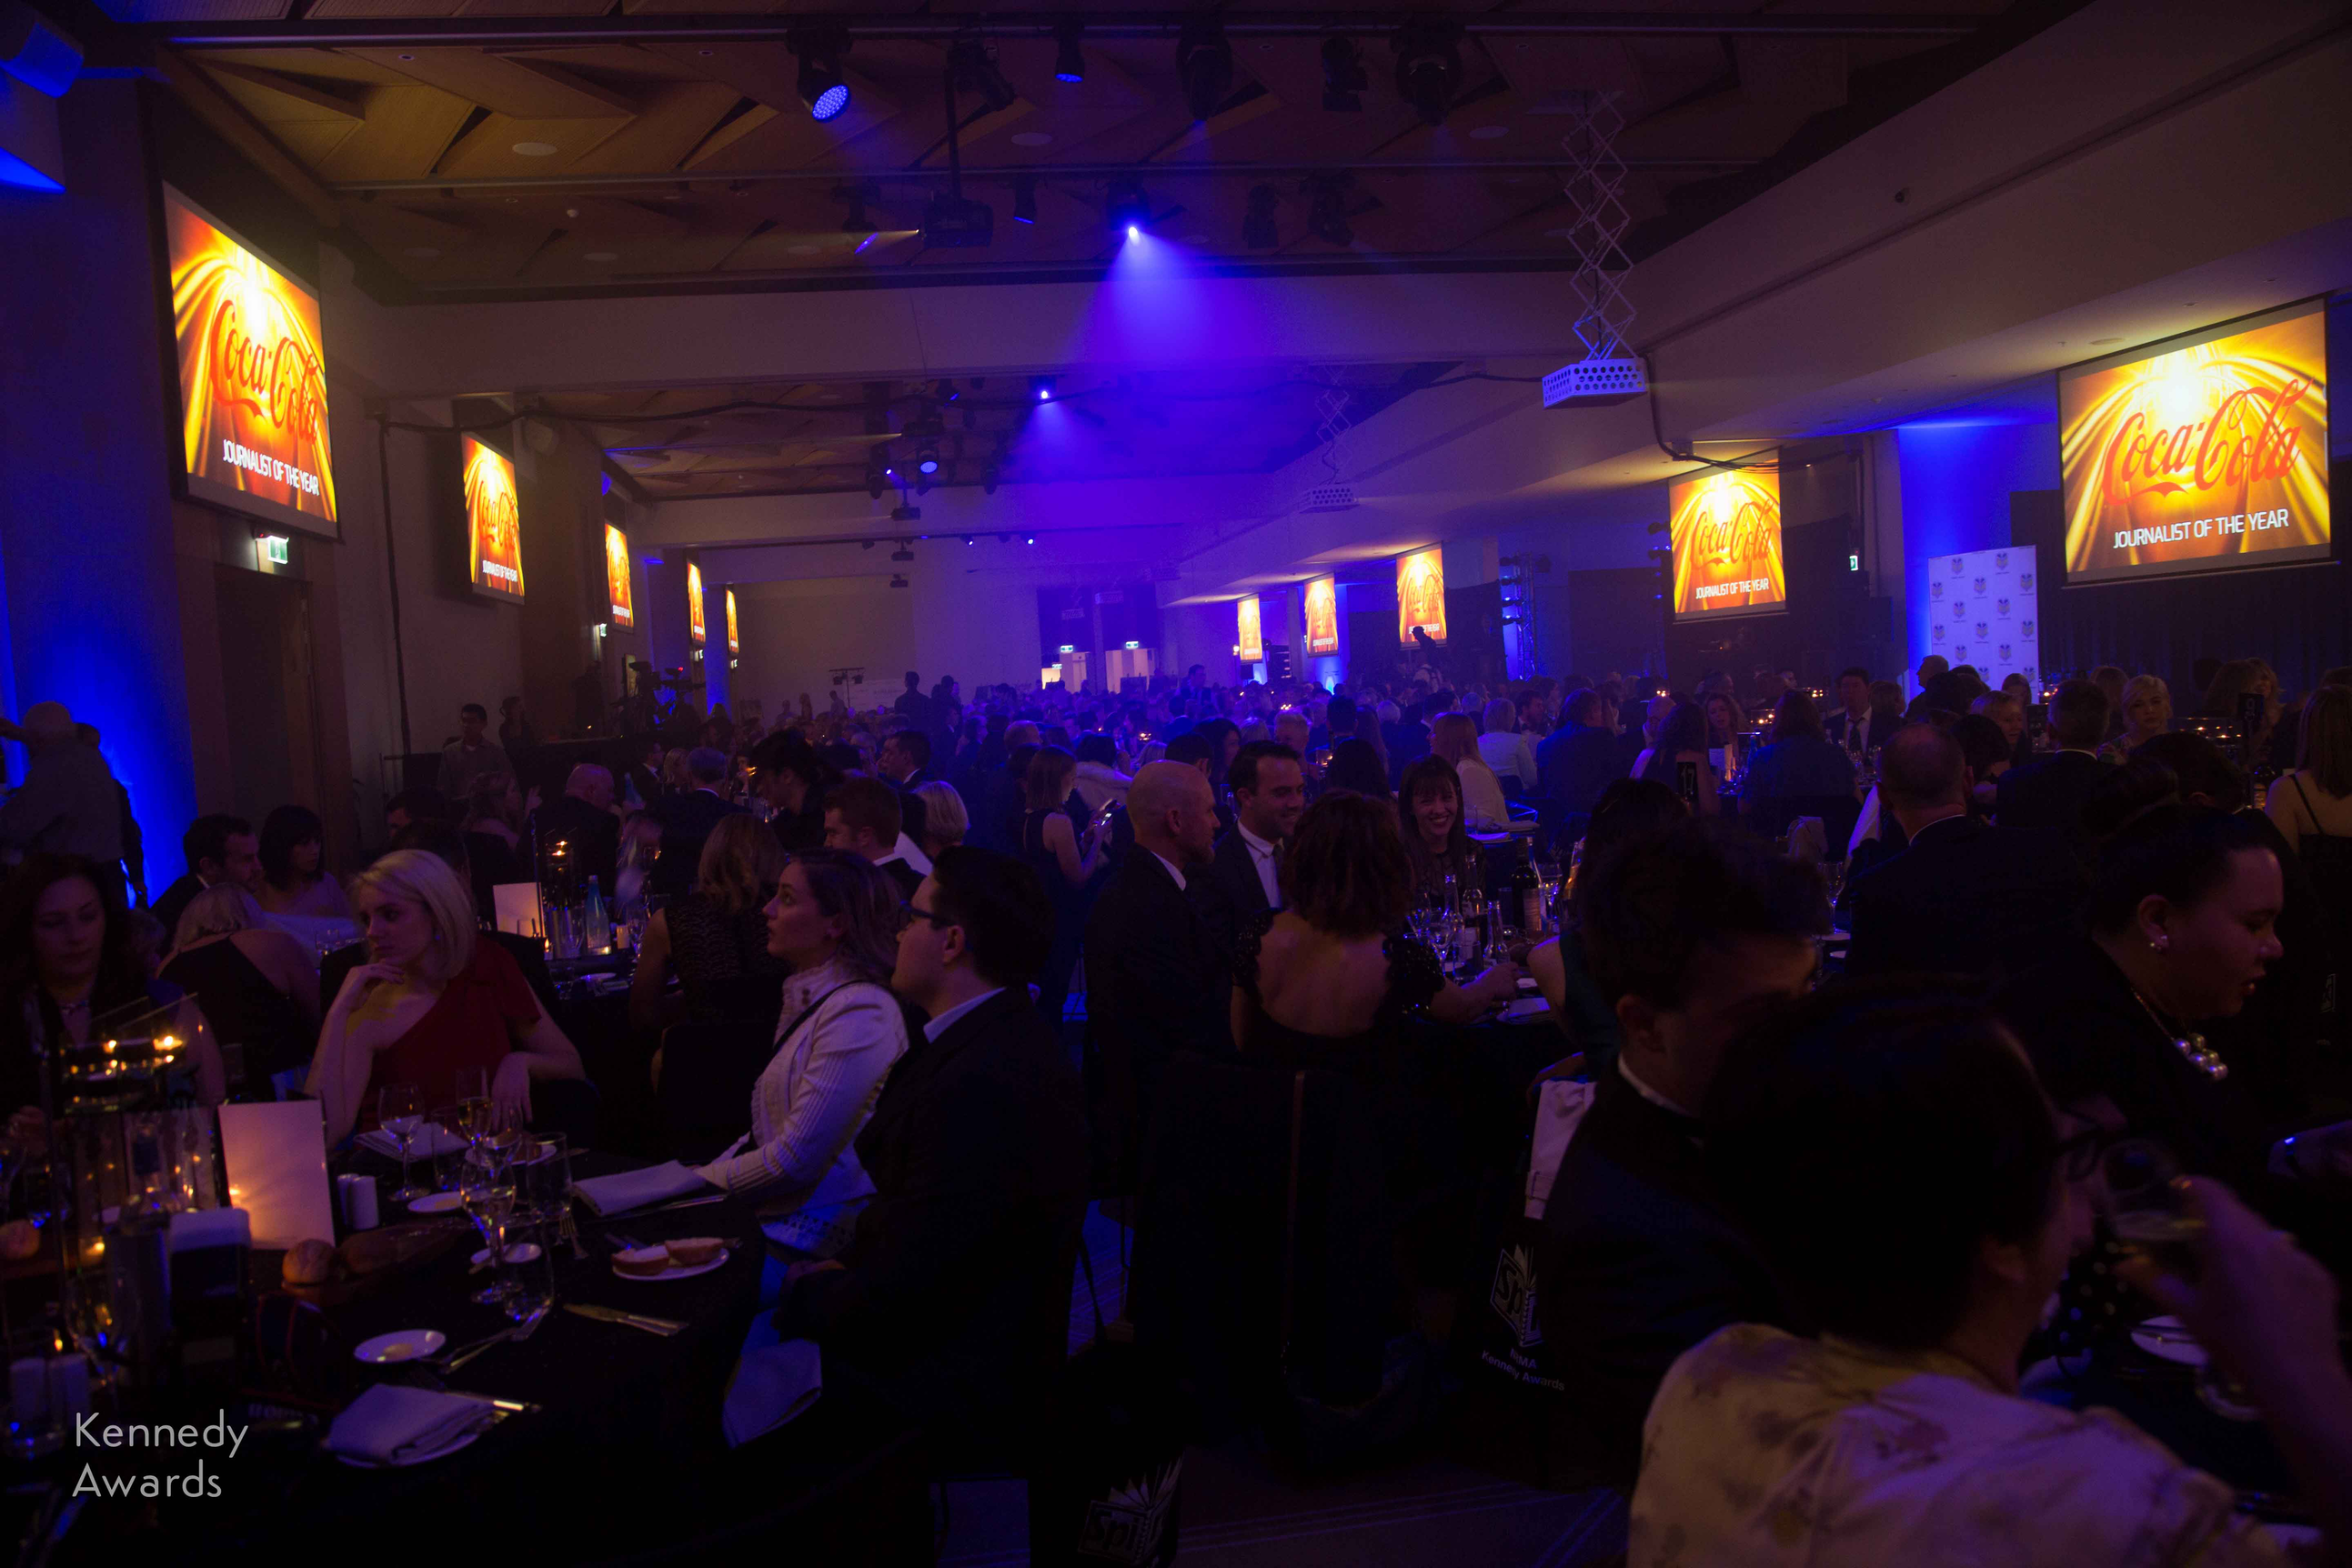 More than 600 guests pack the Grand Ballroom of Royal Randwick